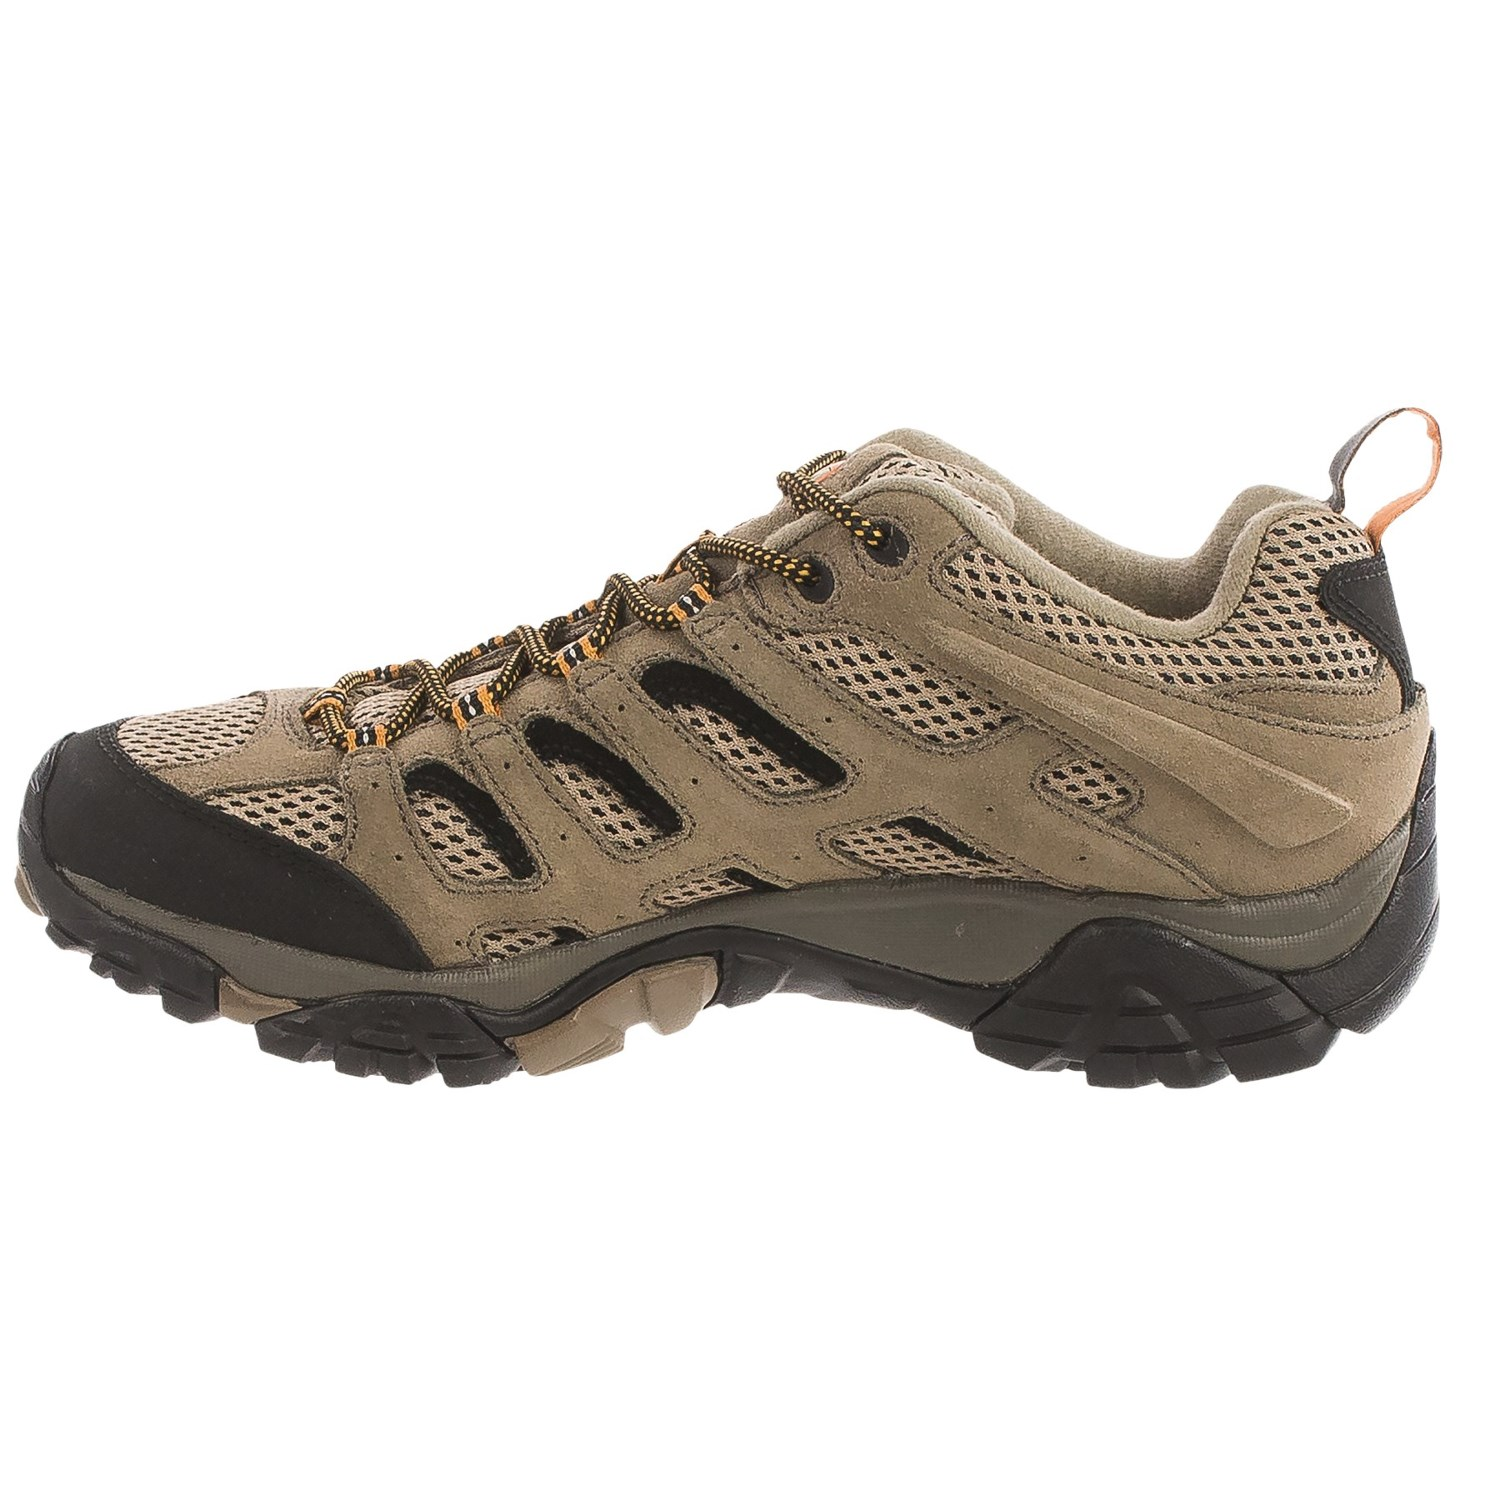 Merrell Moab Ventilator Hiking Shoes For Men Save 40